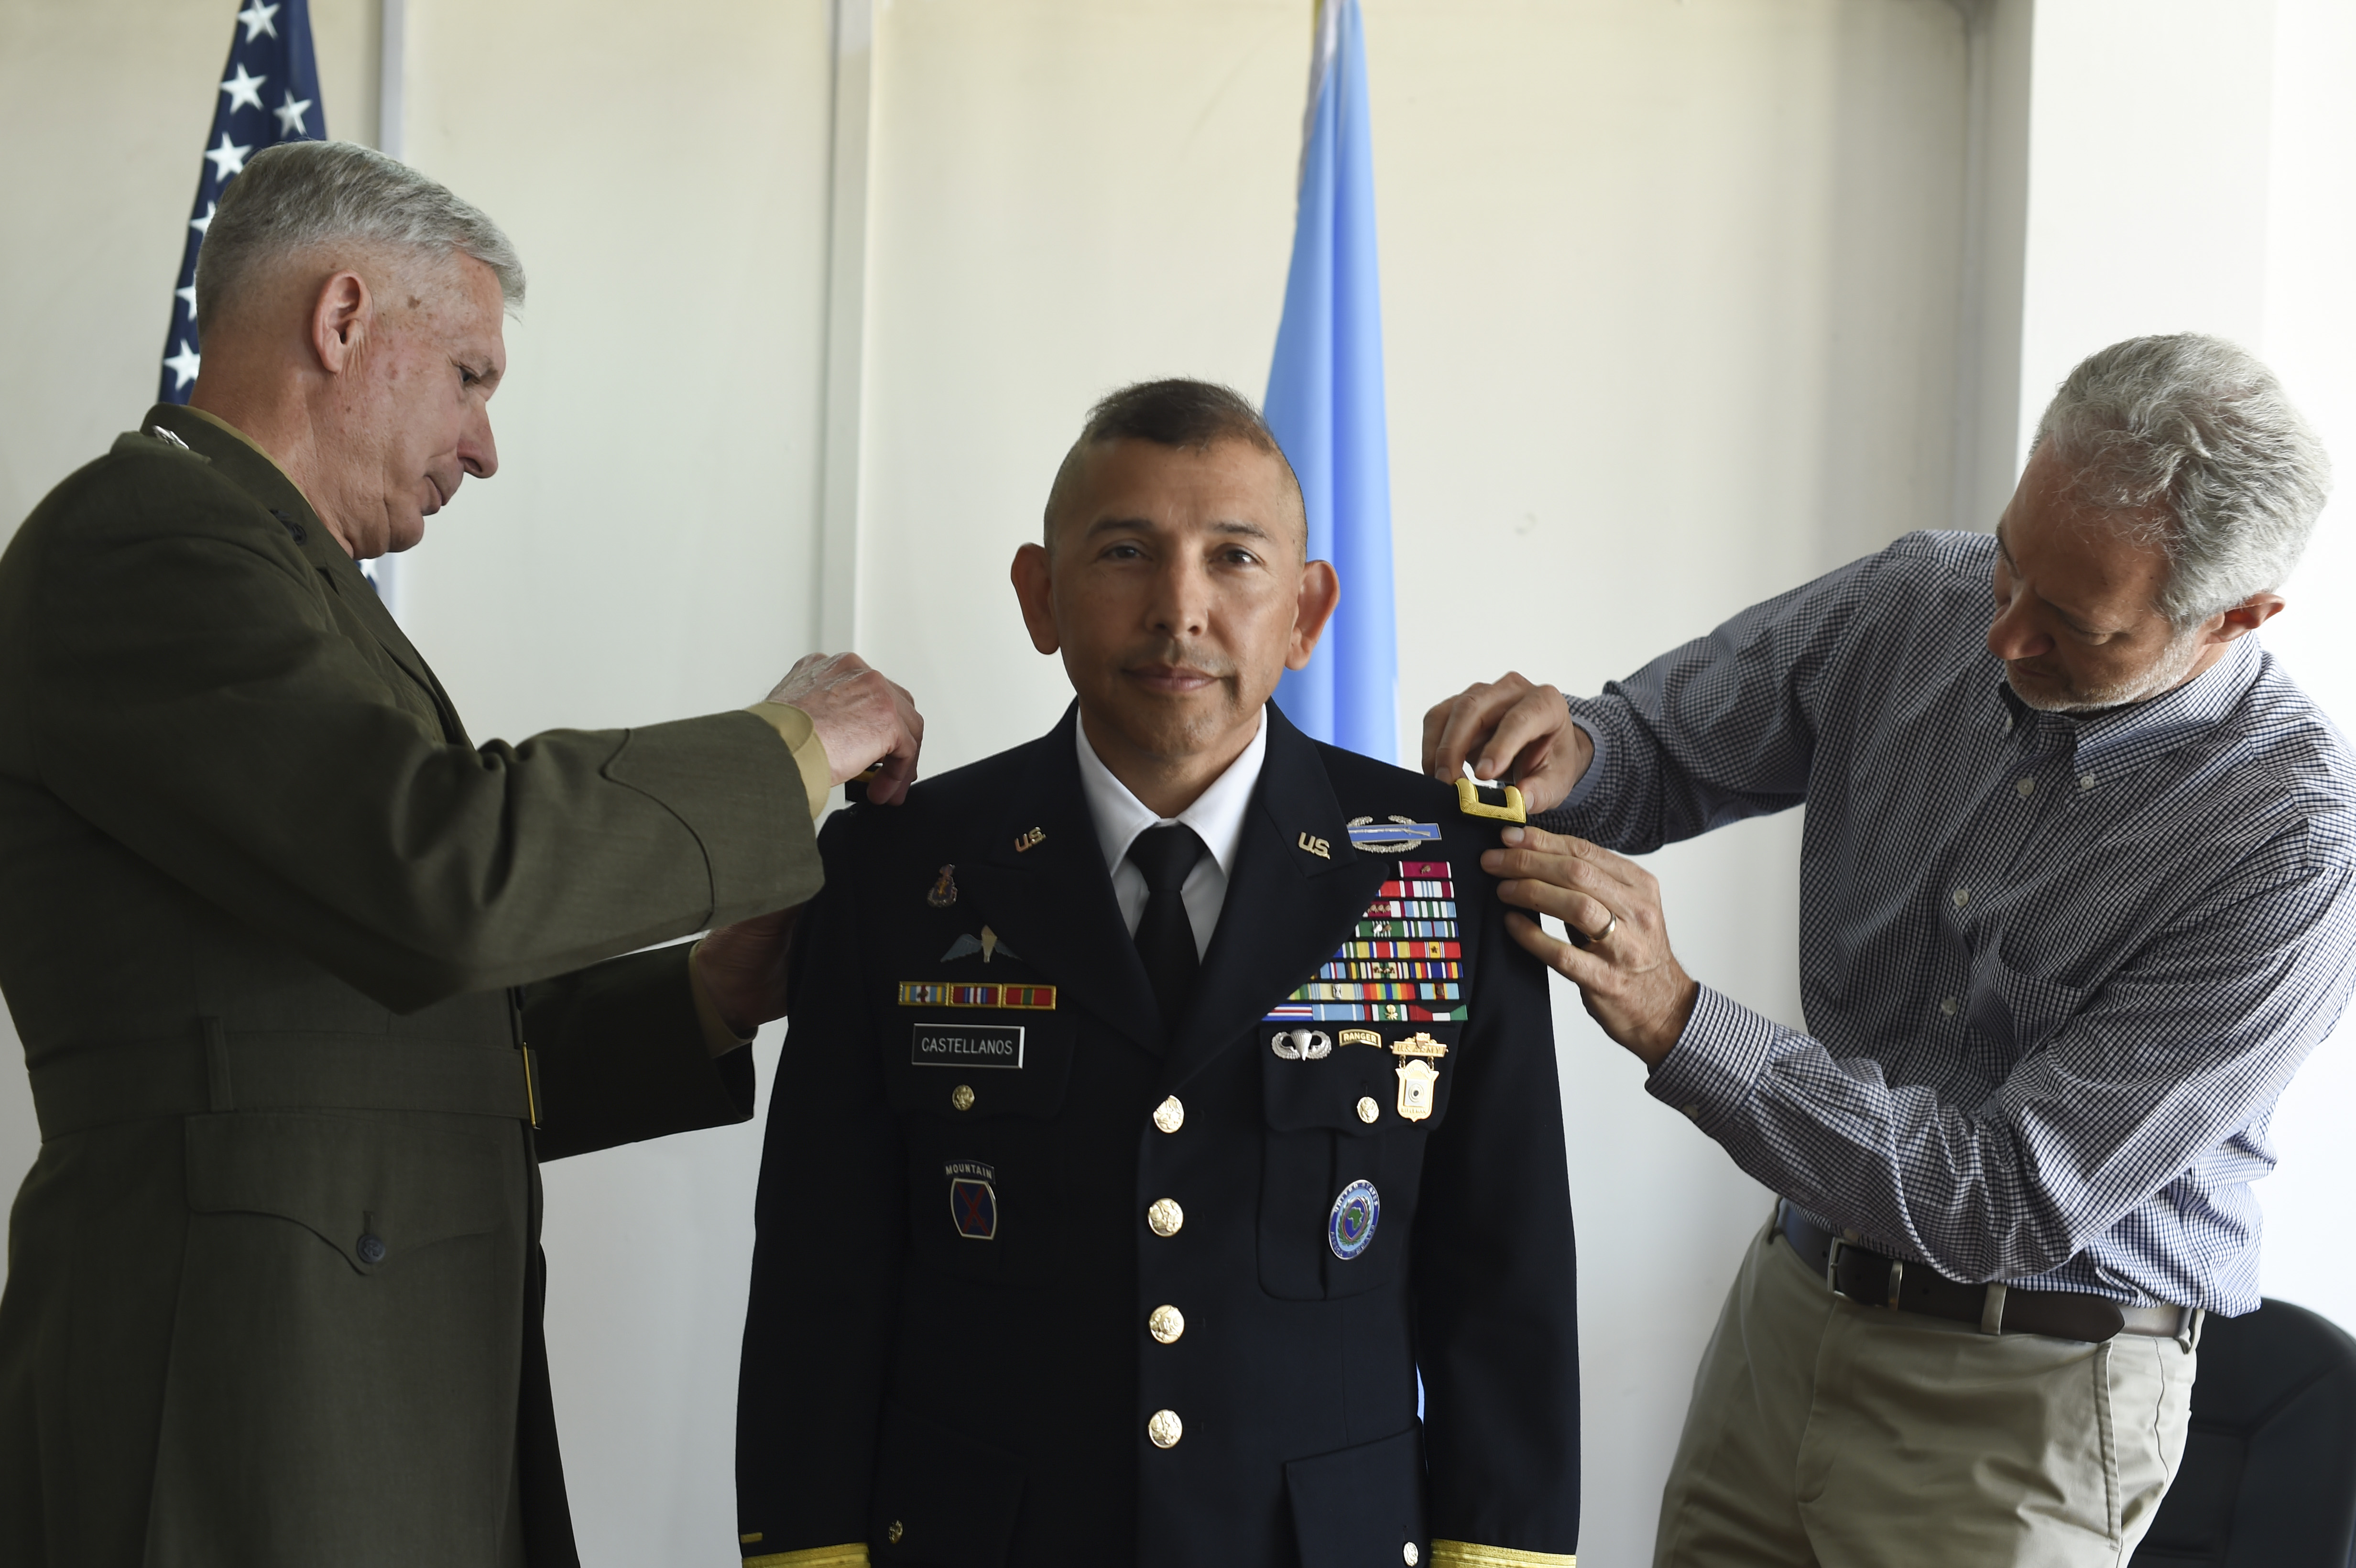 U.S. Army Brig. Gen. Miguel Castellanos, Combined Joint Task Force-Horn of Africa deputy commanding general in Somalia and Mogadishu Coordination Cell director, has his new rank insignia pinned on his uniform by Marine Gen. Thomas Waldhauser, Africa Command commander and Ambassador Stephen Schwartz, U.S. Ambassador to Somalia during a promotion ceremony at MCC, June 4, 2017. Castellanos is the U.S. military liaison to the Federal Government of Somalia, Somali National Security Forces, and the international partners. (U.S. Air Force photo by Staff Sgt. Eboni Prince)